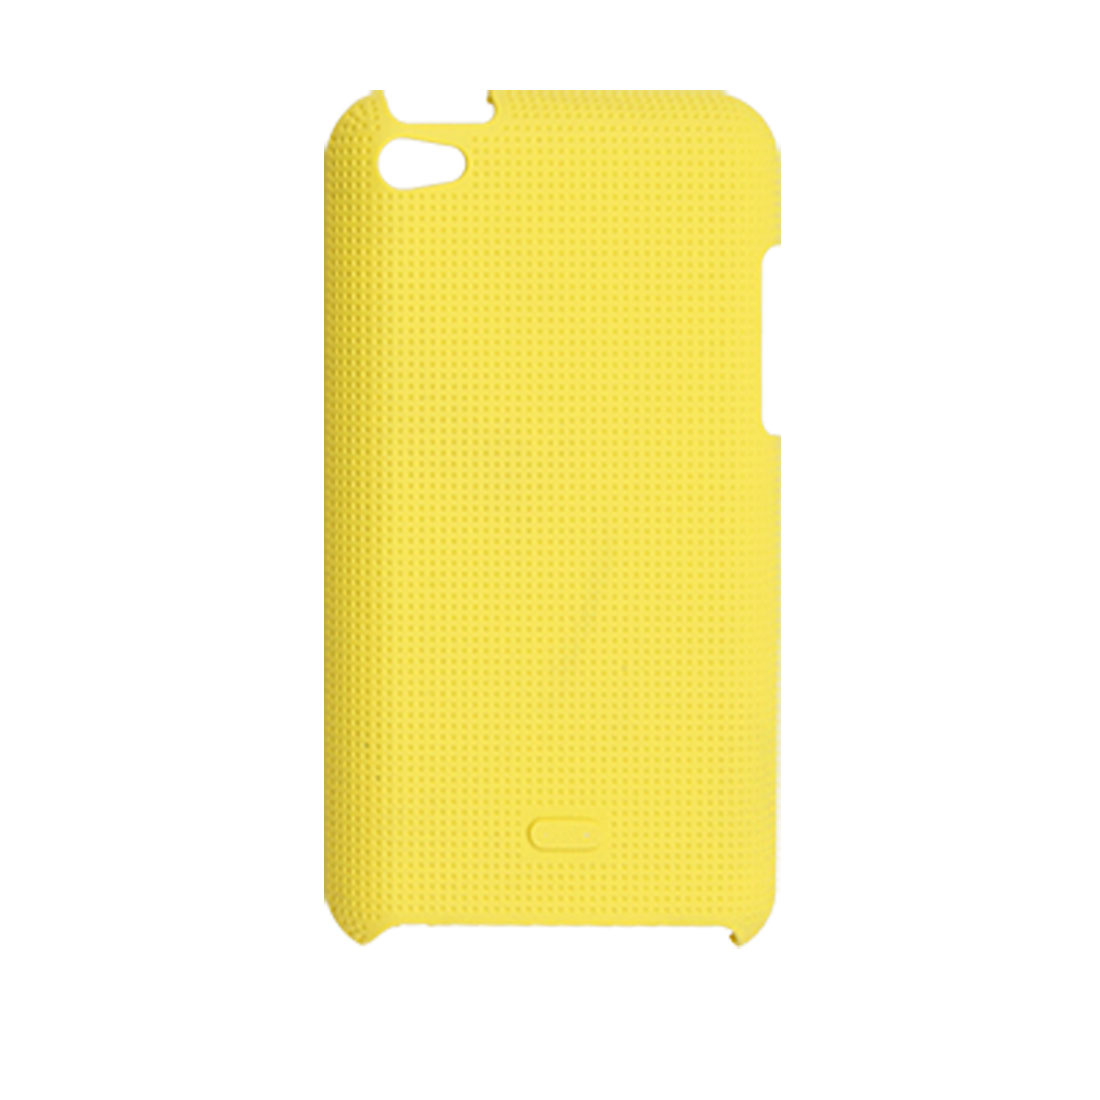 Yellow Antislip Back Case Protector for iPod Touch 4G